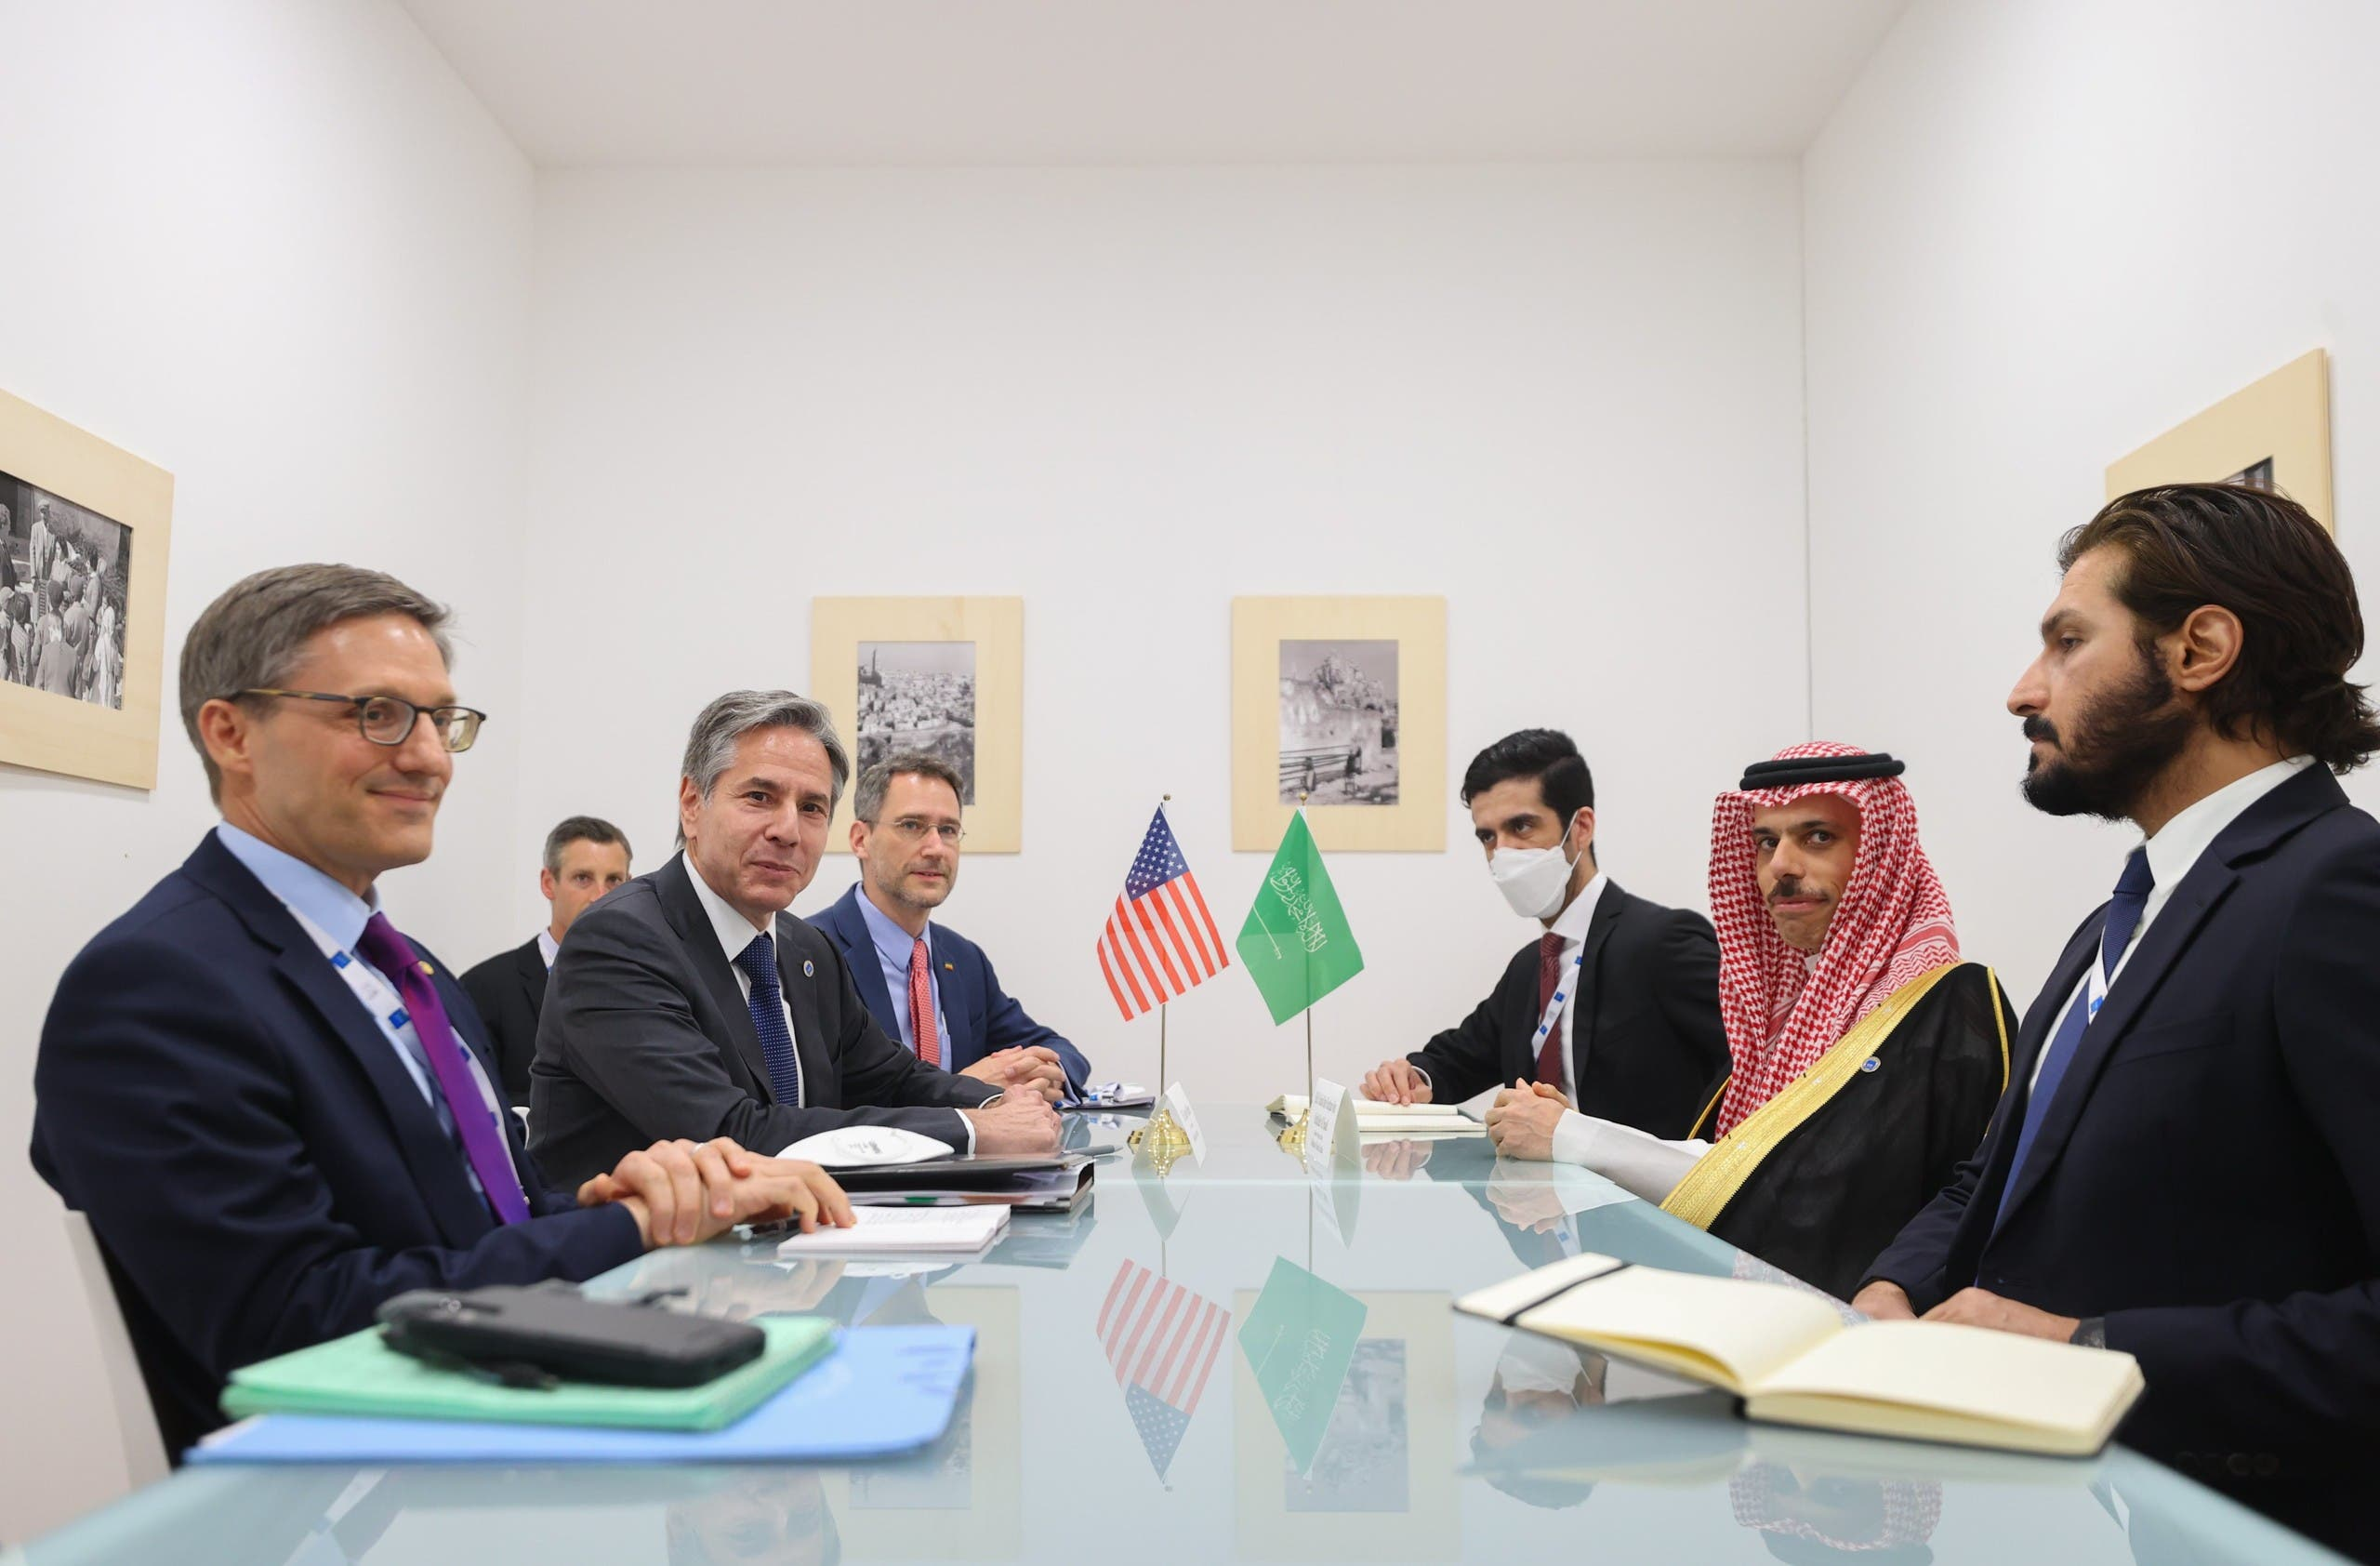 US Secretary of and Saudi Arabia's Foreign Minister Prince Faisal bin Farhan hold a meeting at the G20 gathering in Matera, Italy on June 29, 2021. (Twitter)